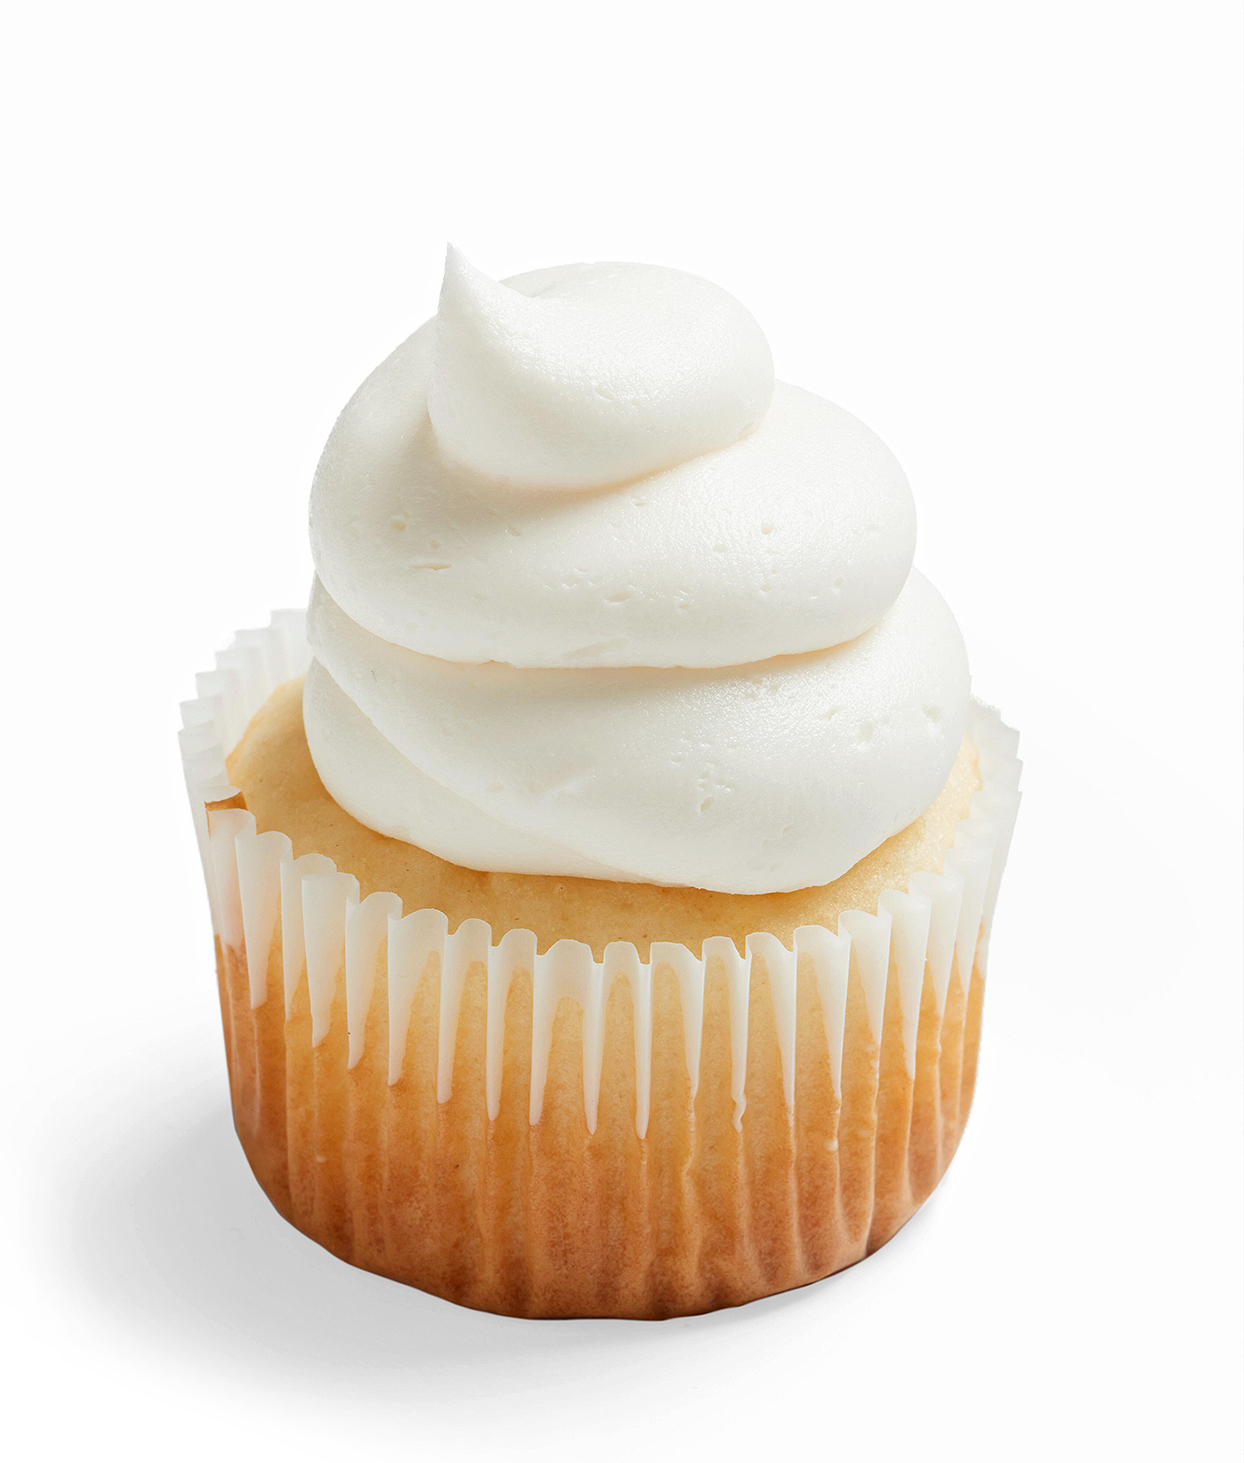 Creamy White Frosting